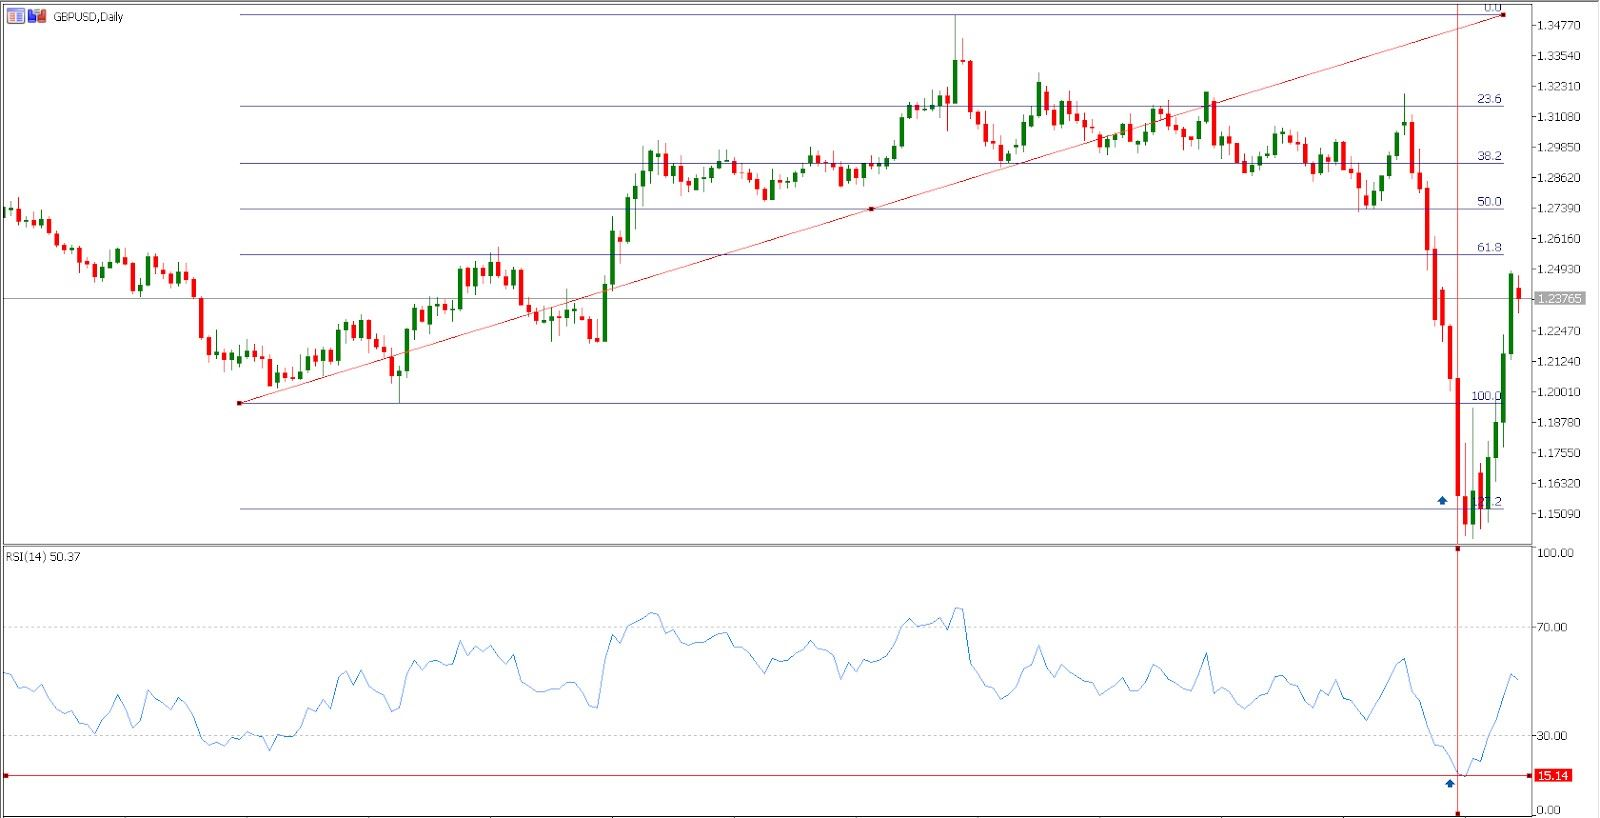 GBP/USD - trading the RSI